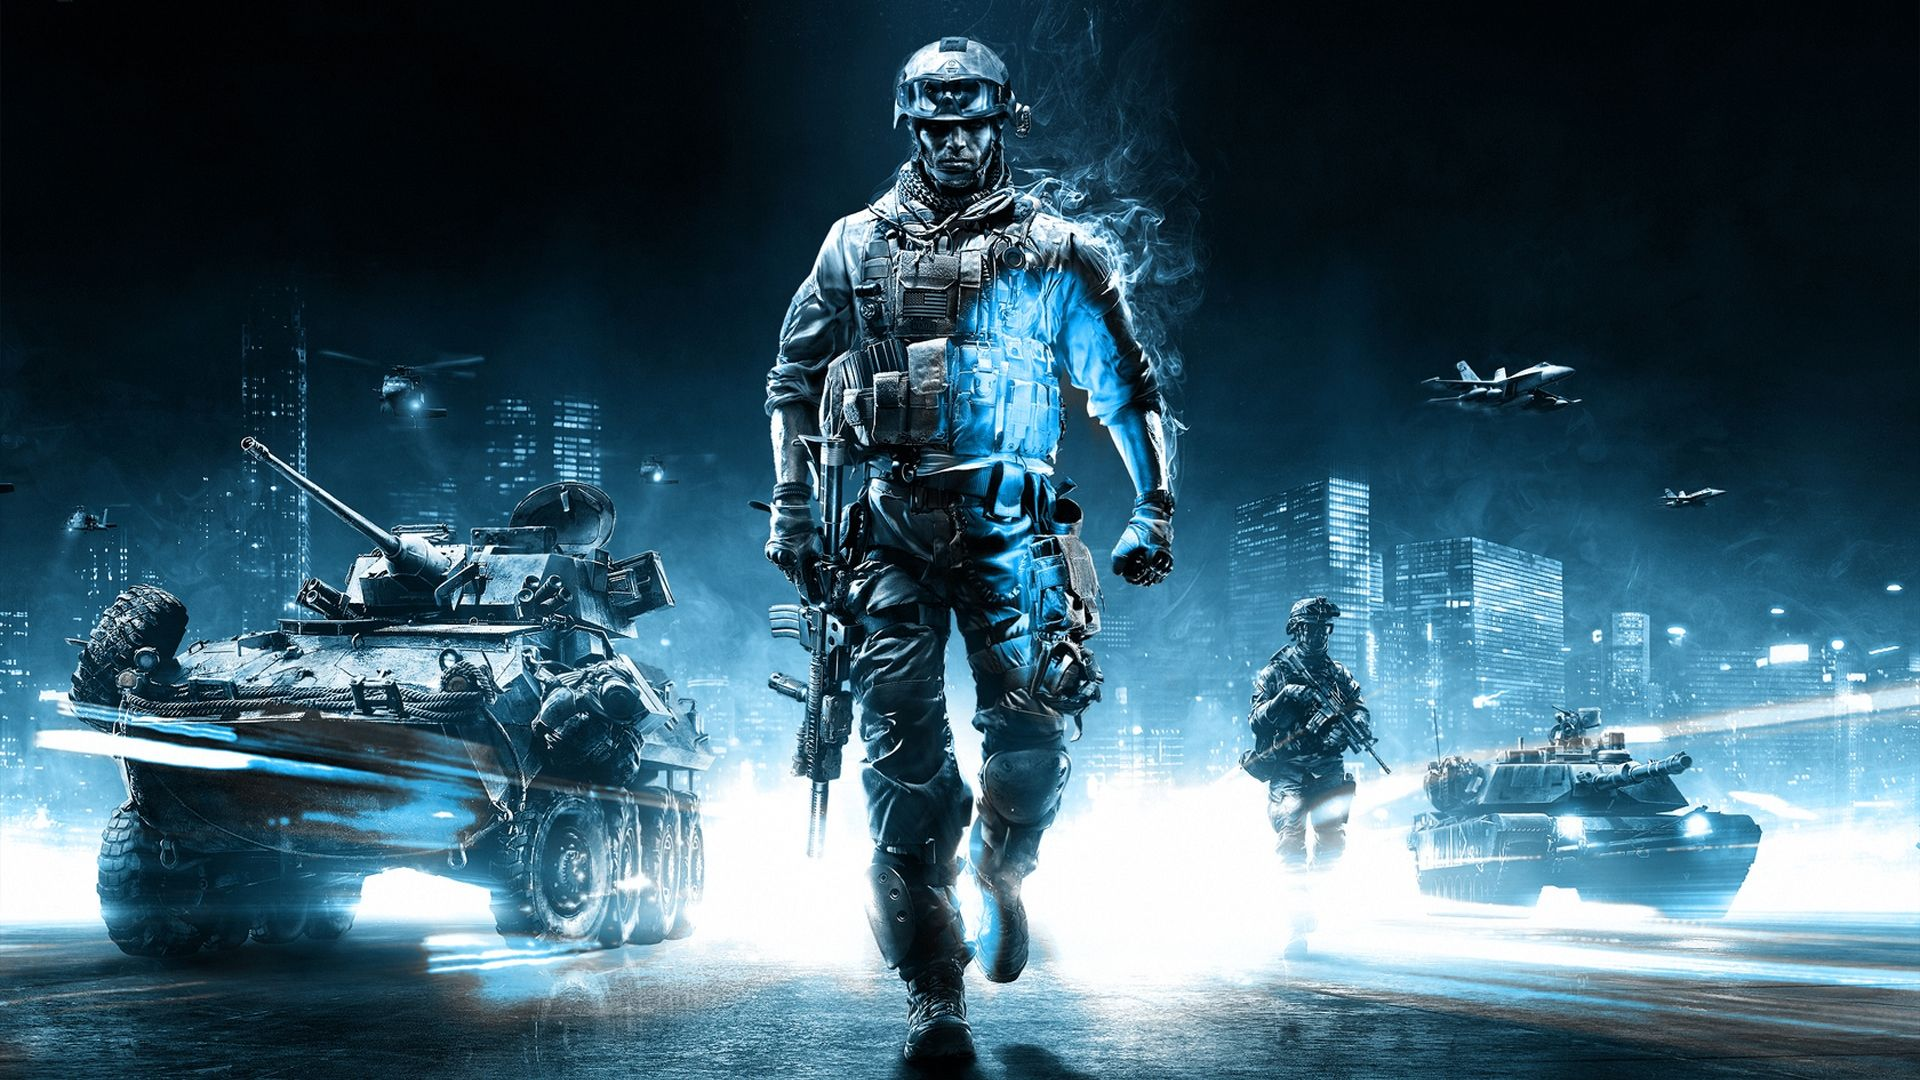 Army Wallpapers Full Hd Is 4k Wallpaper Pc Games Wallpapers Gaming Wallpapers Hd Army Wallpaper